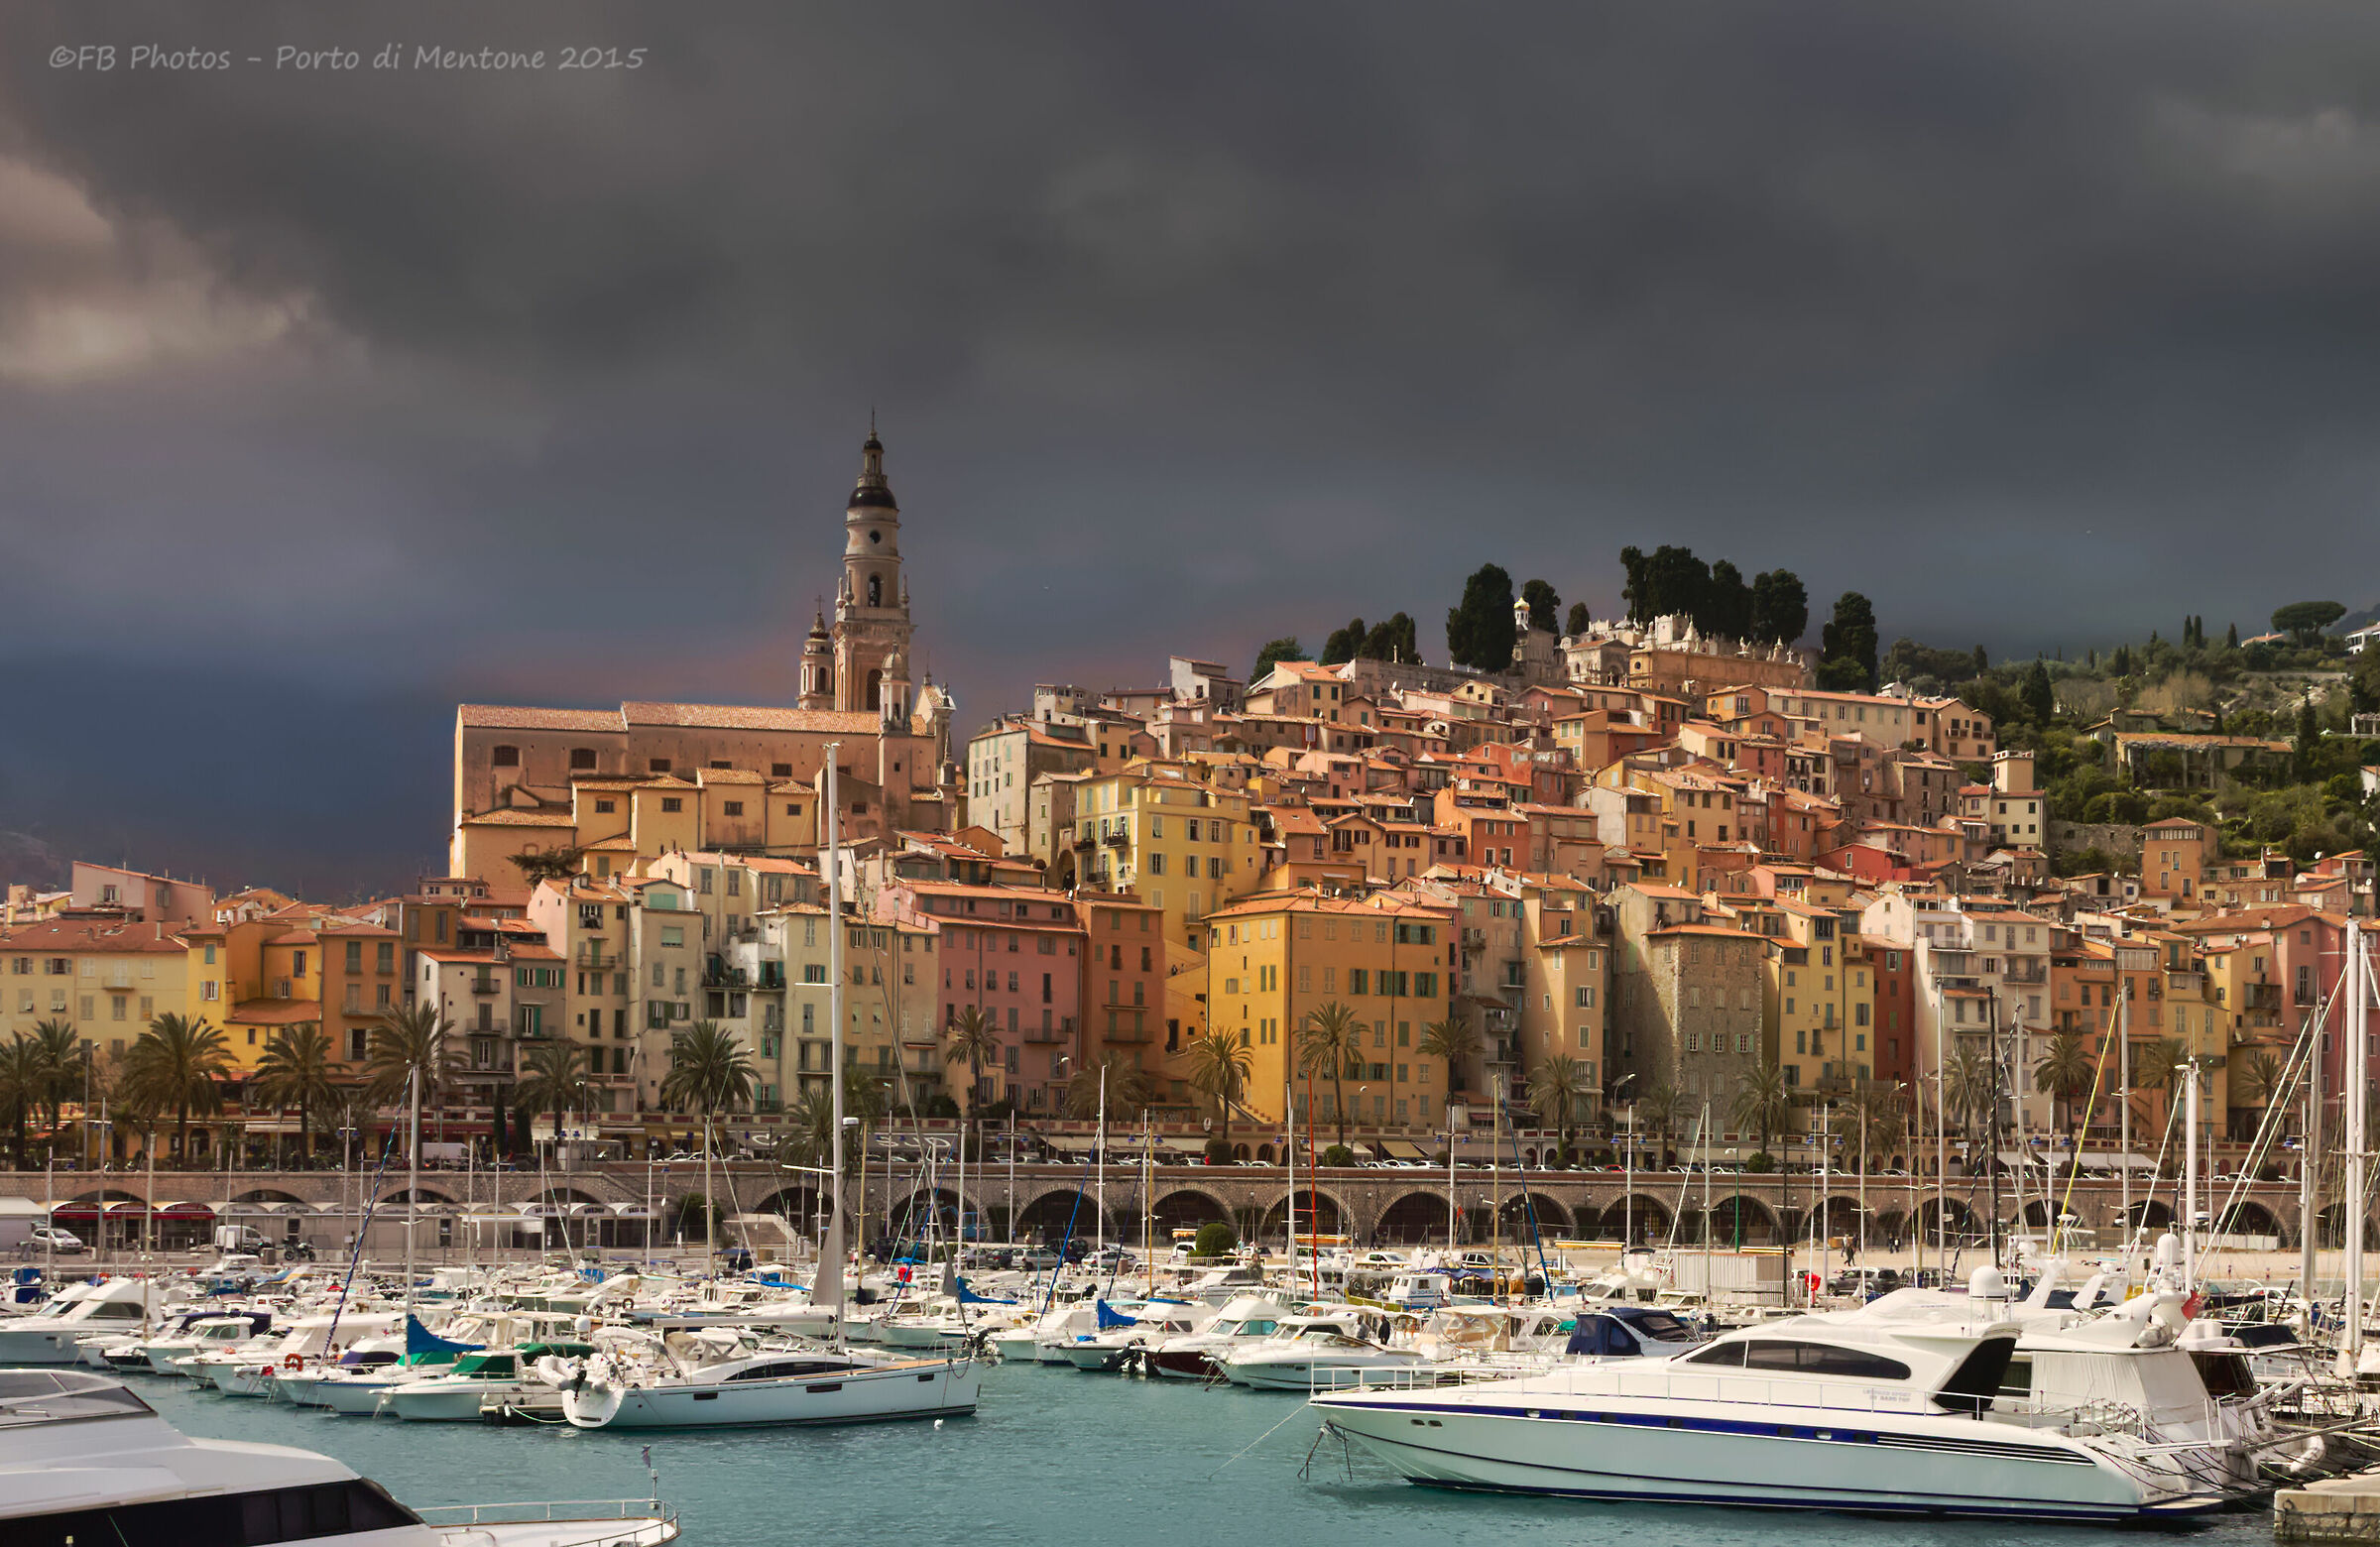 The colours of the port of Menton...